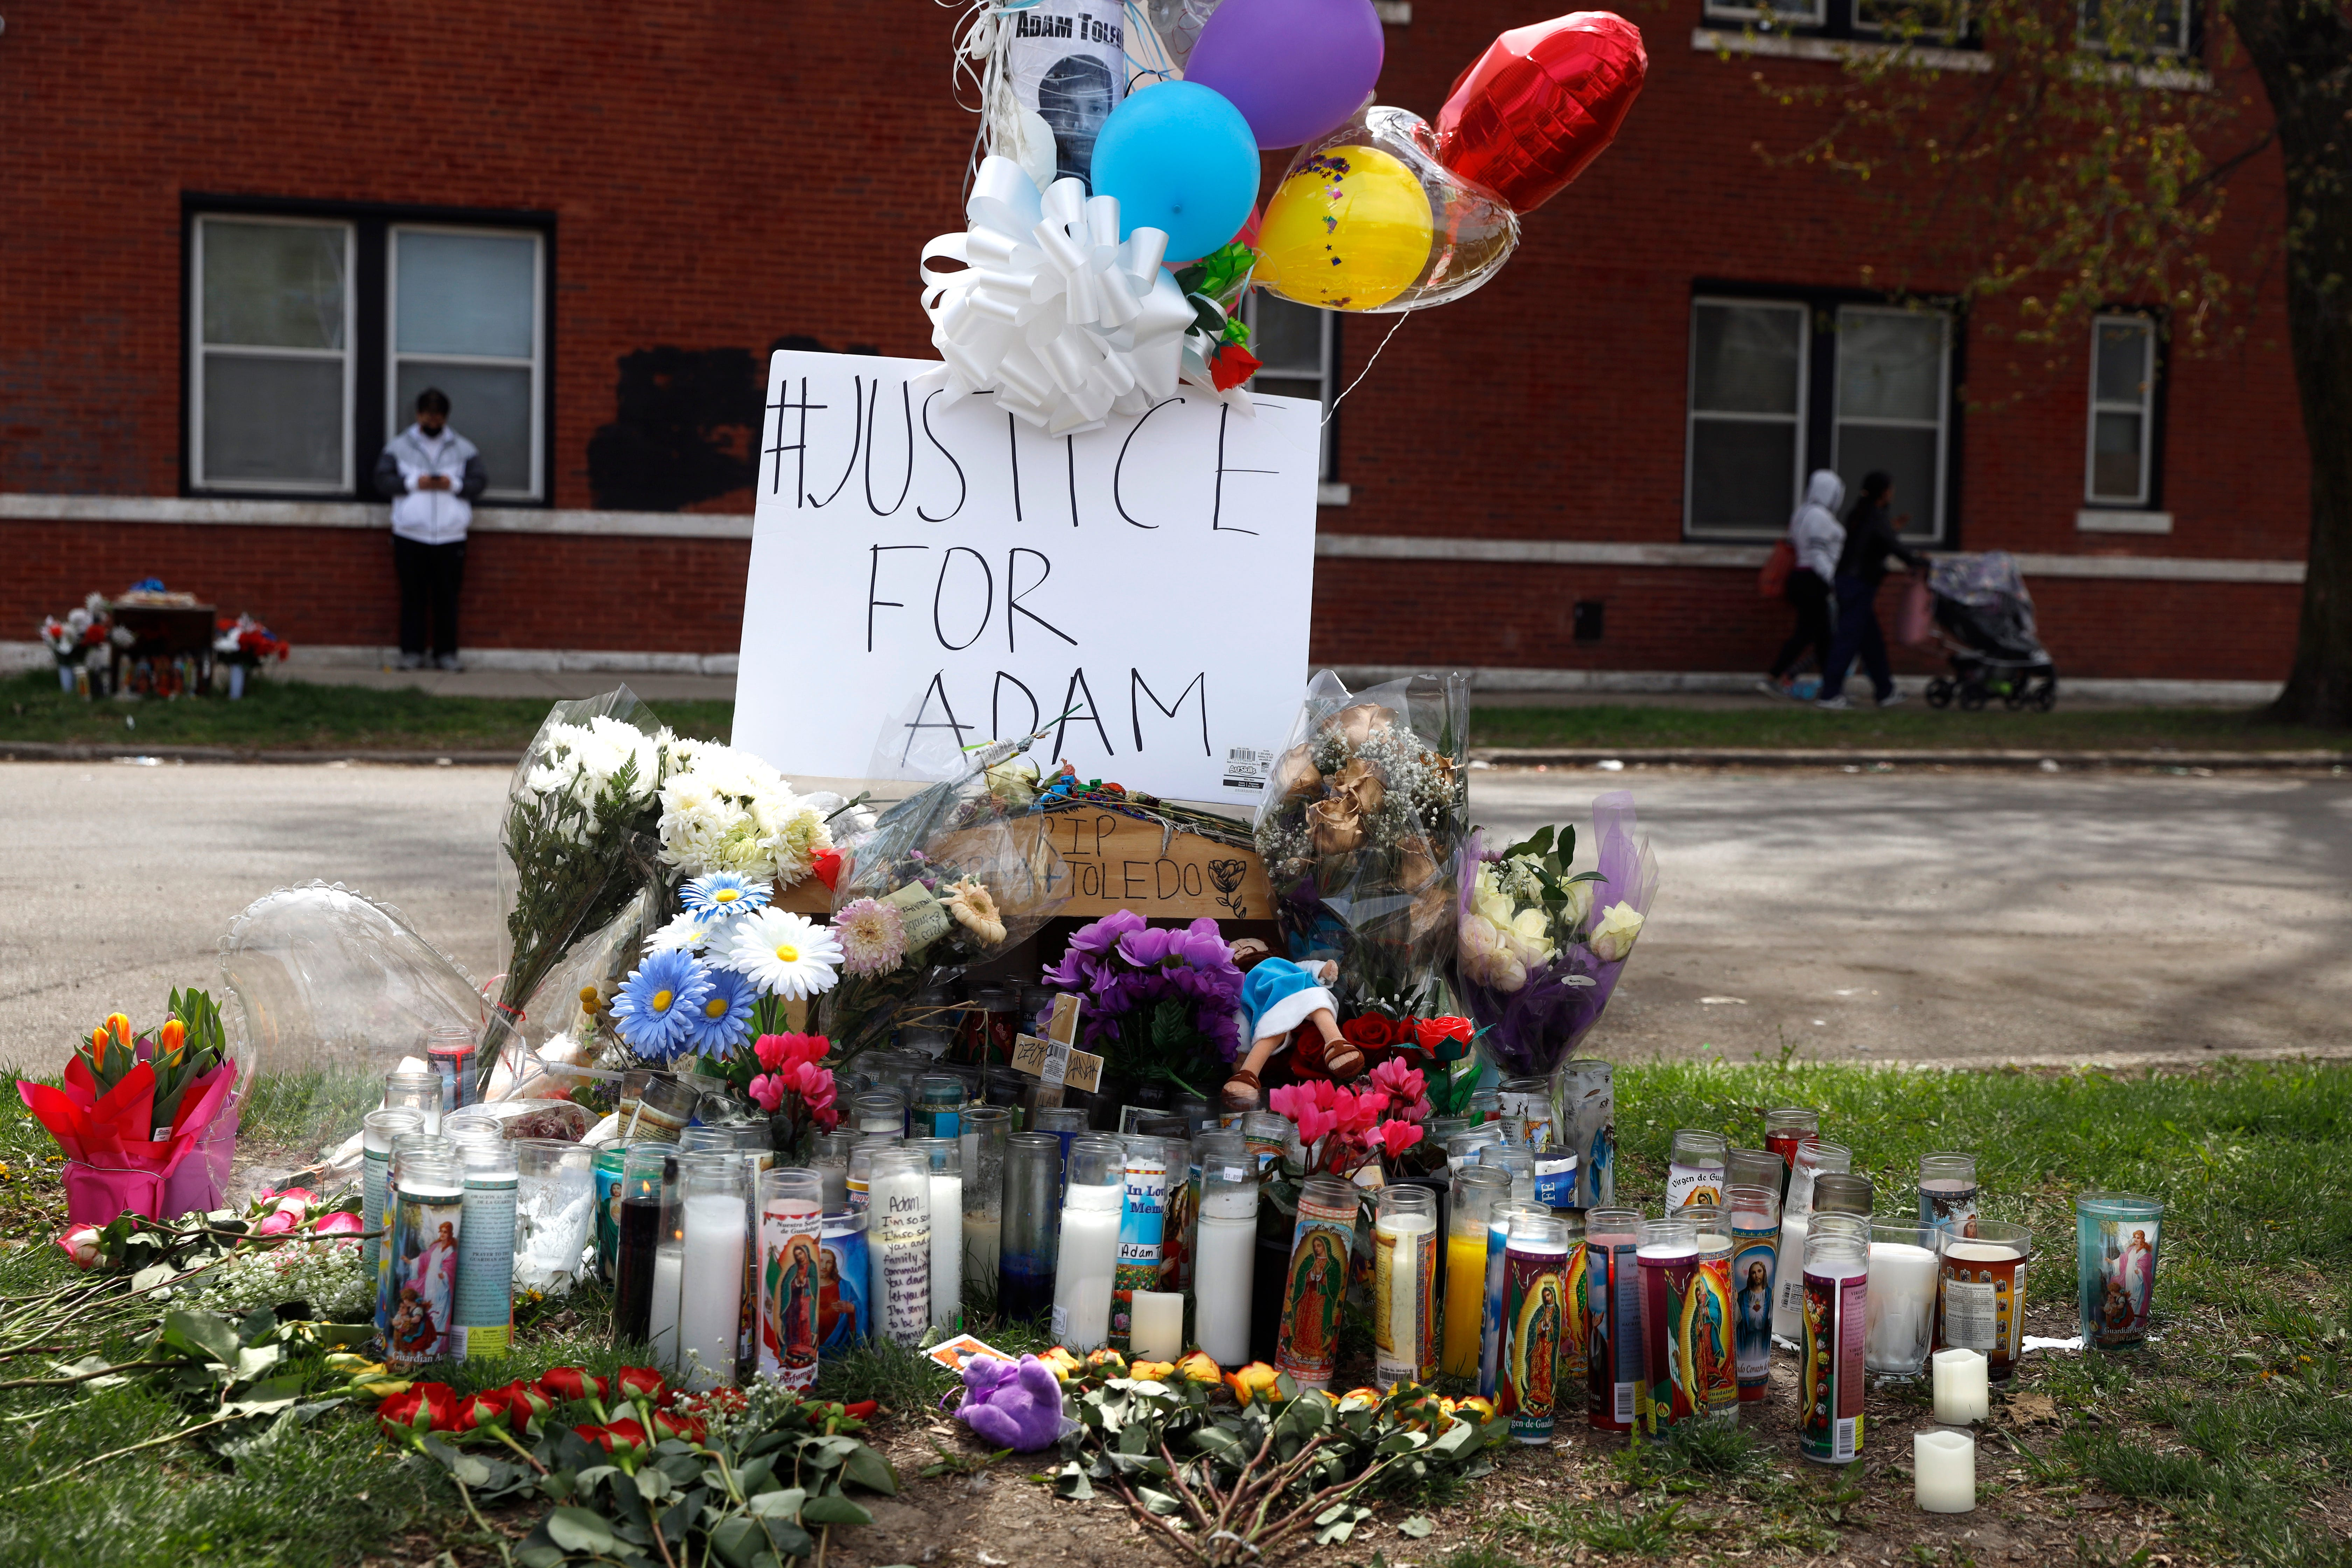 Chicago police critics call for charges in shooting of boy 1